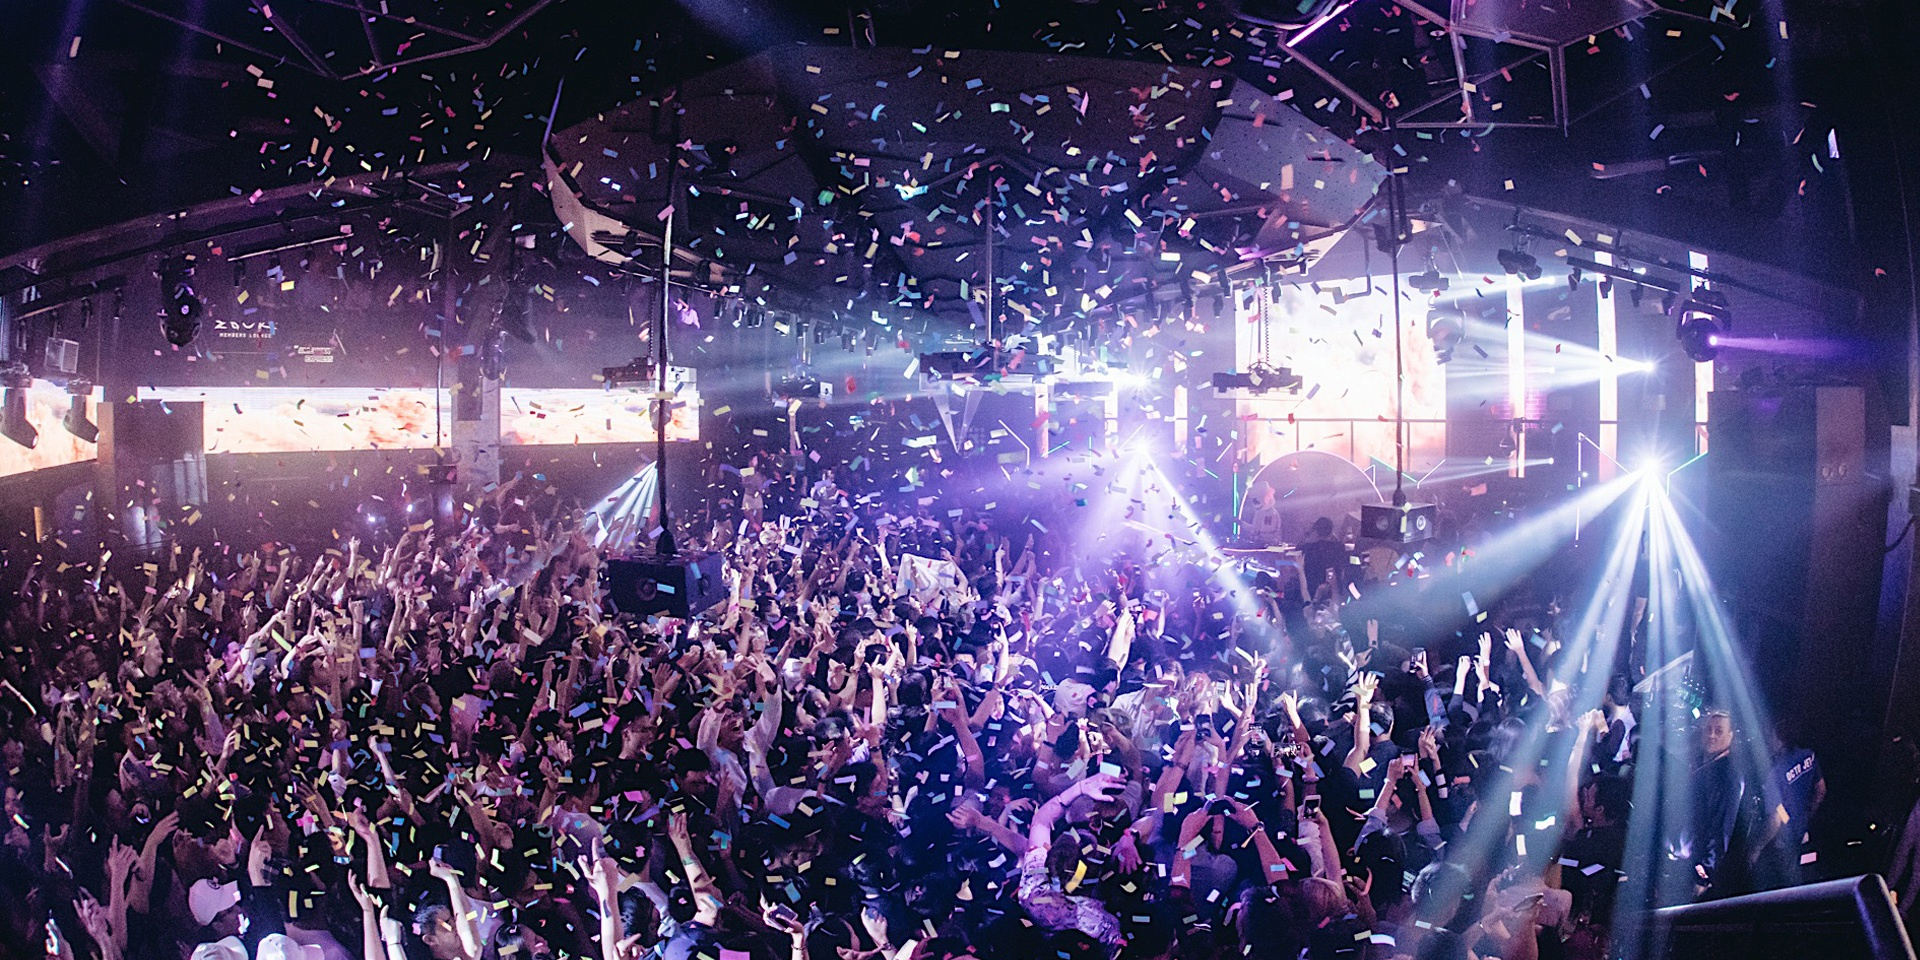 An interview with Zouk CEO Andrew Li on the club's bright, multi-faceted future